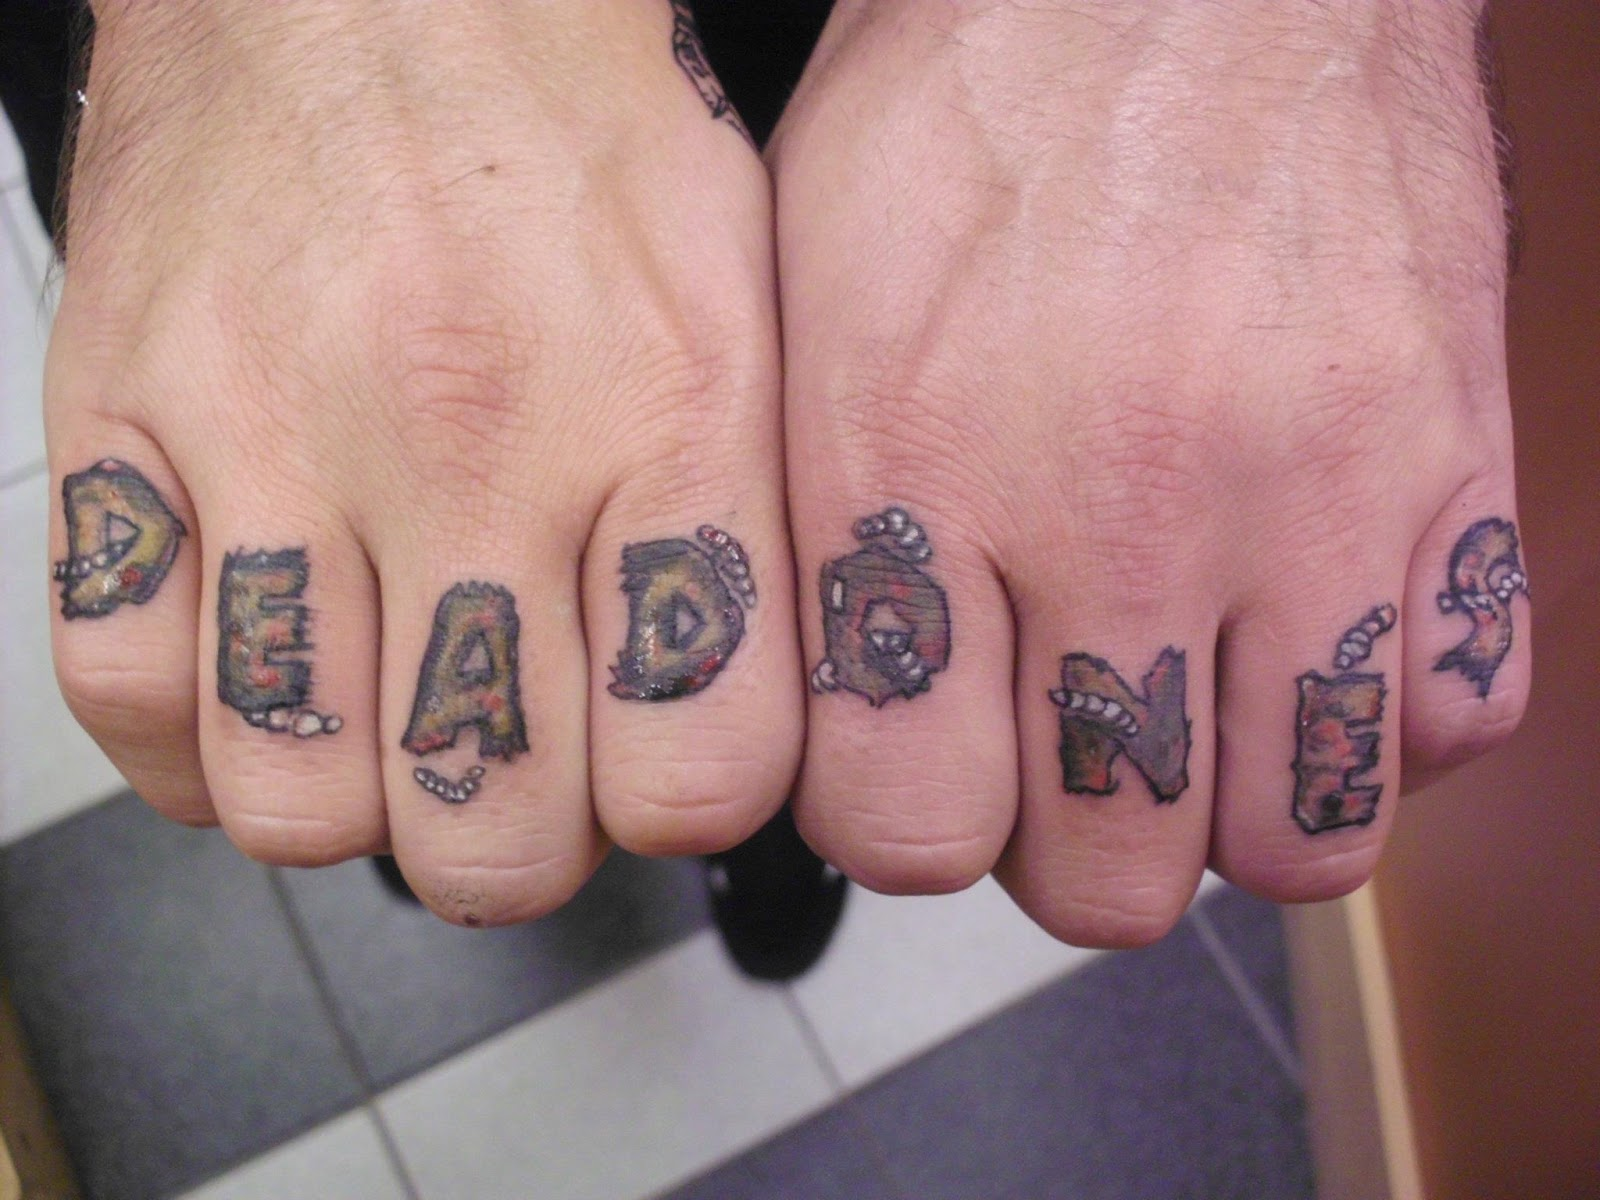 Dead Ones Tattoo On Fingers